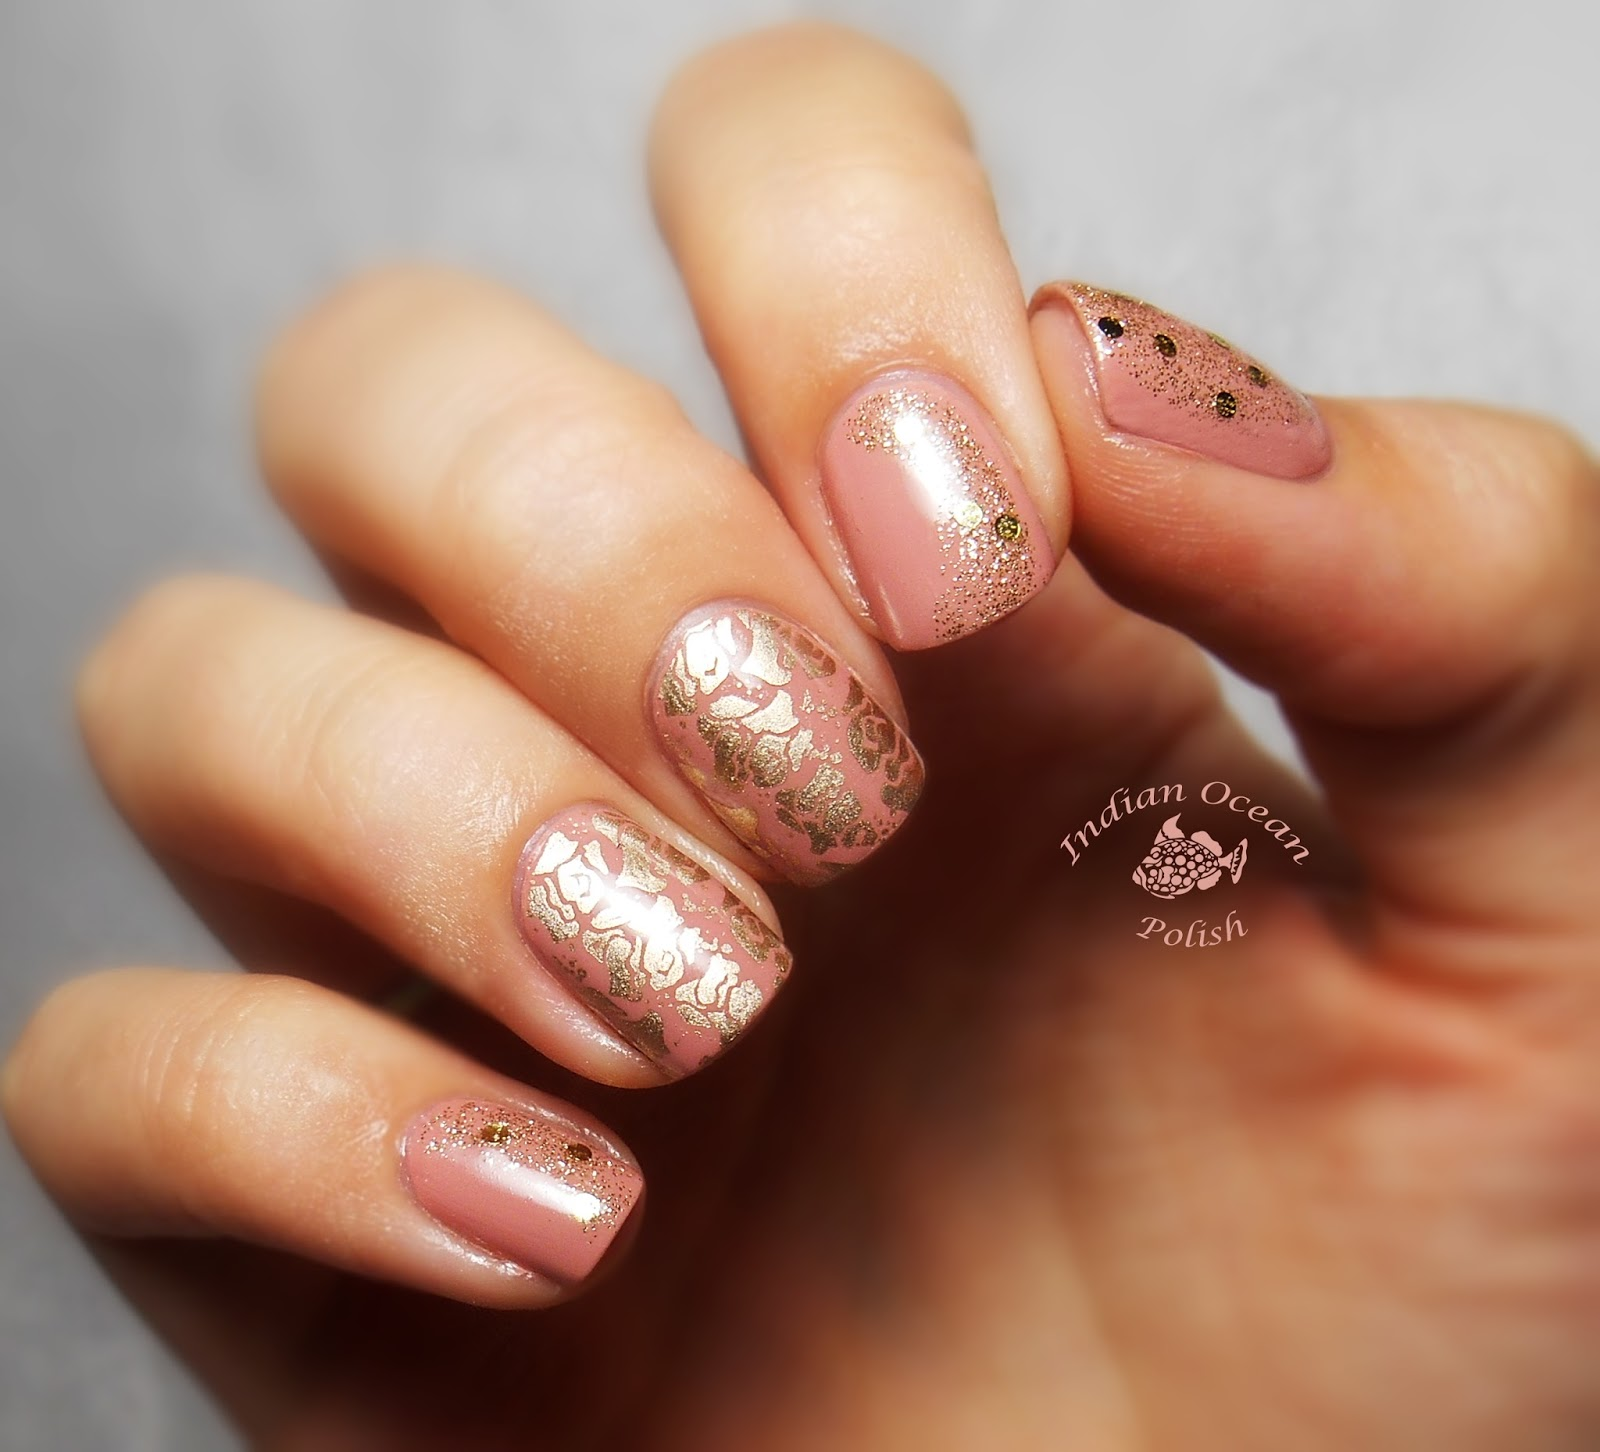 Indian ocean polish pink gold and rose nails prinsesfo Images